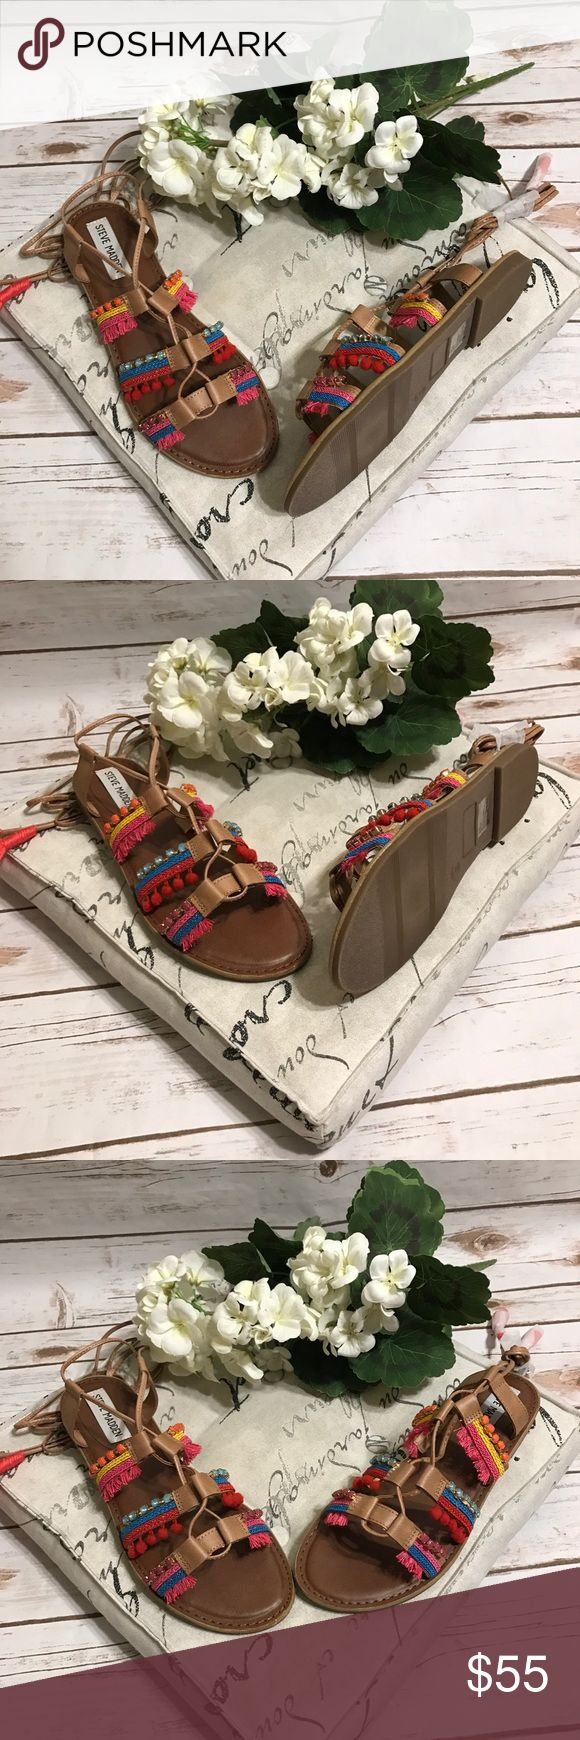 Steve Madden Boho Gladiator Sandal Gorgeous NWT boho Steve Madden strappy gladiator sandals with multicolor pom pins. Size 9. Steve Madden Shoes Sandals